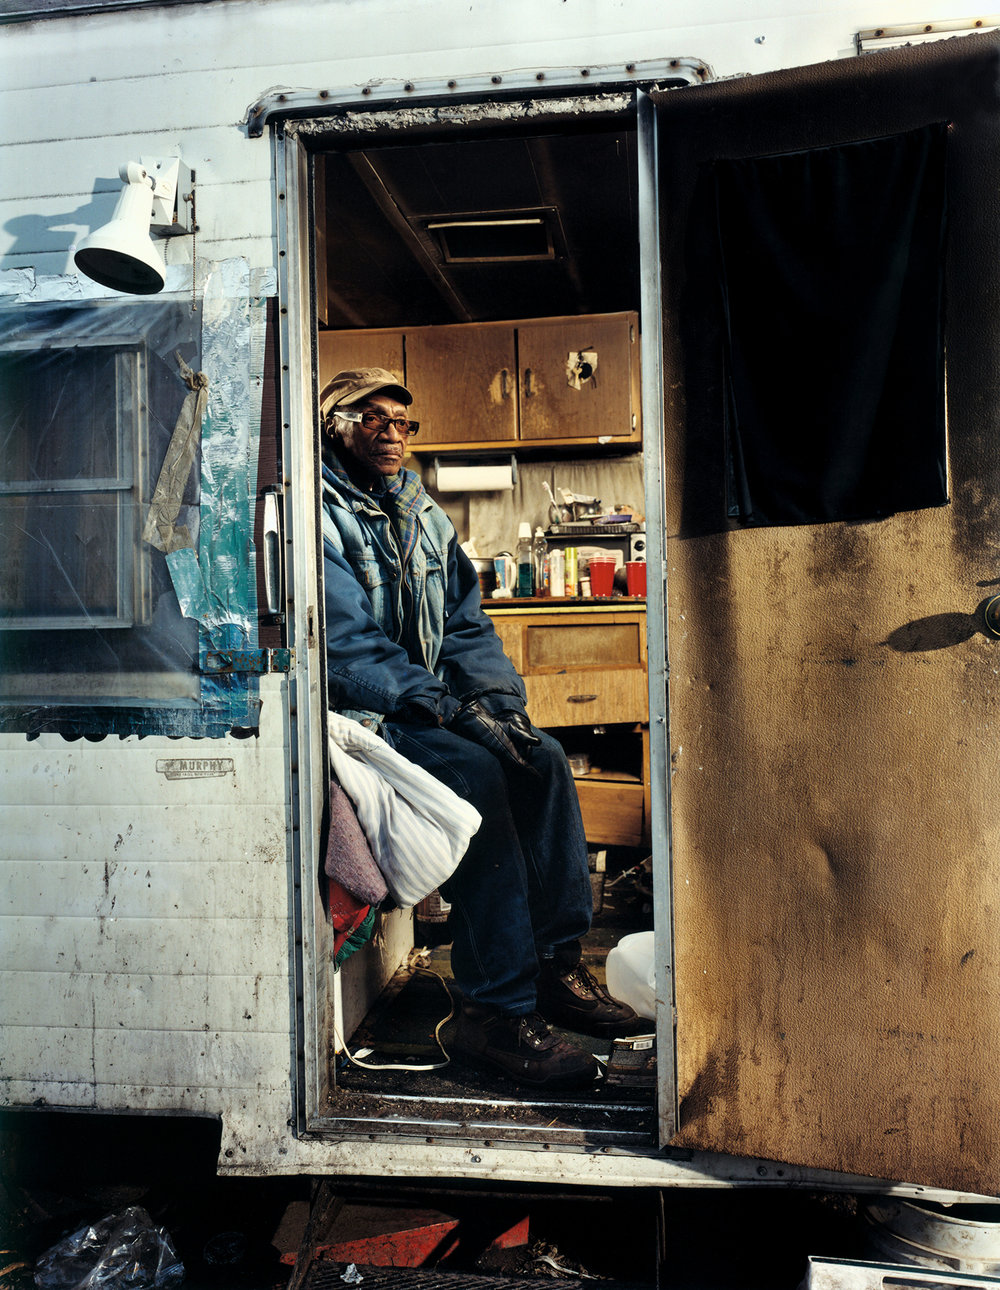 Robert - homeless man - Bronx, NY